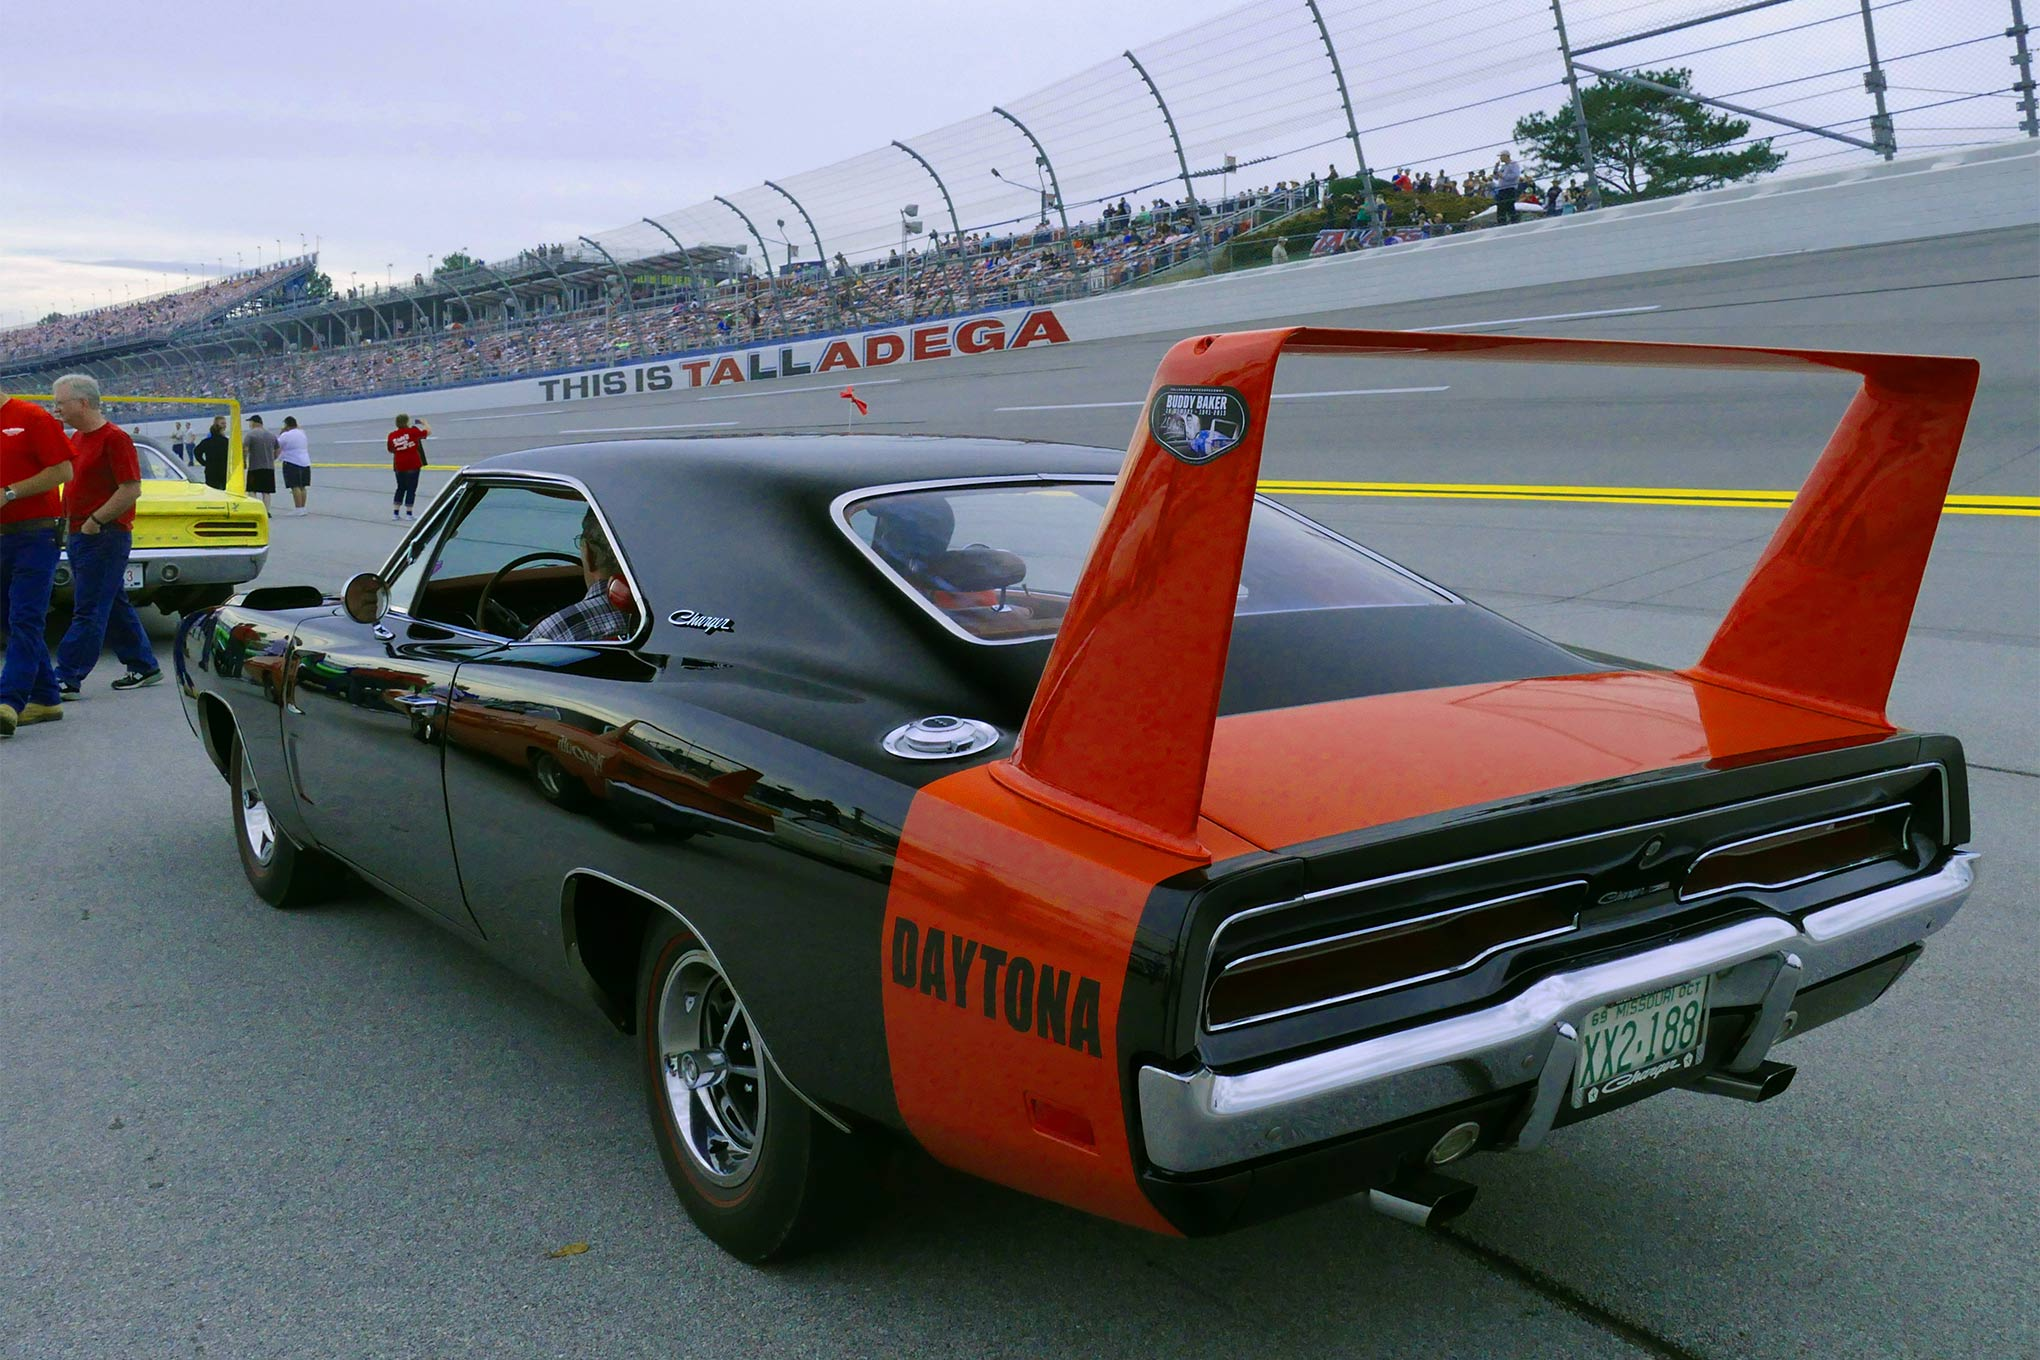 The special Buddy Baker decal is visible on the wing of Jim and Delma McCauley's black Charger Daytona from Montana.